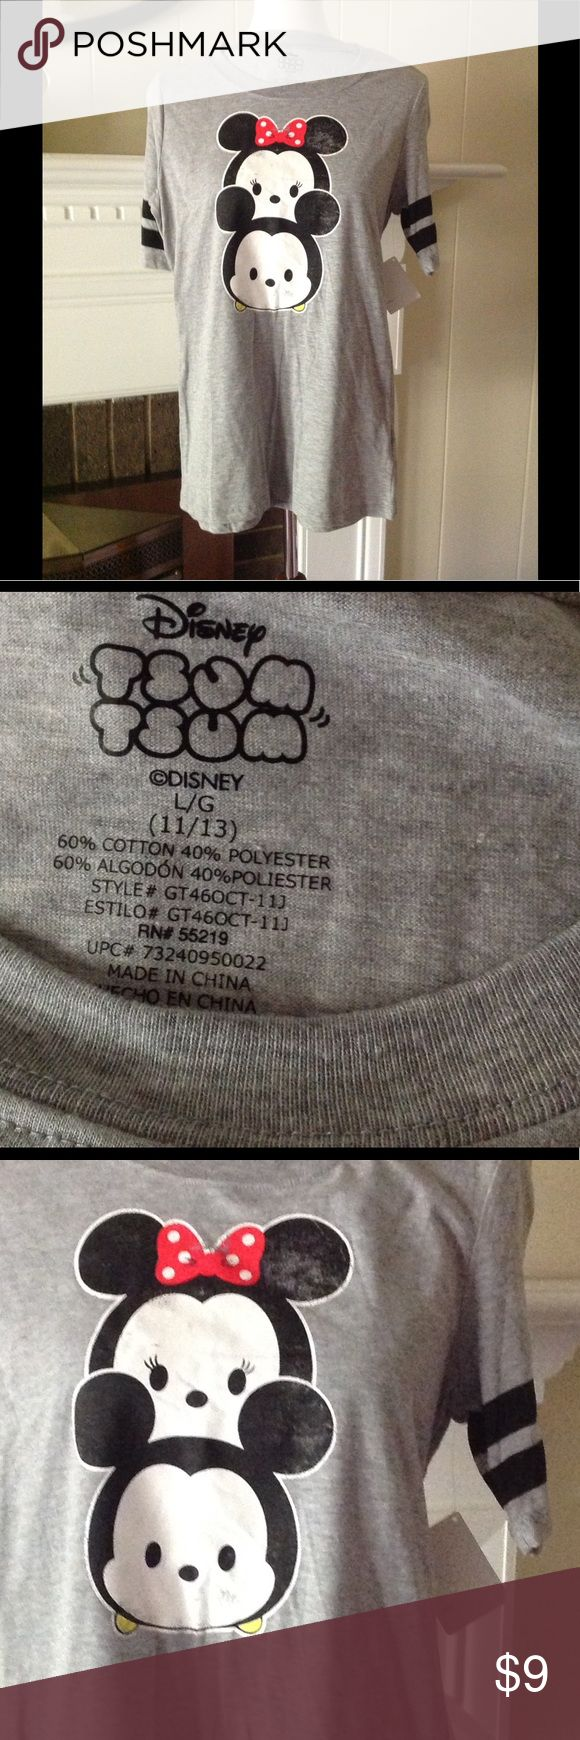 """Disney Minnie Mickey Tsum Tsum T Shirt Cute and soft Disney Tsum Tsum, heather gray tshirt size junior 11/13. New With Tags. Flat measurements: armpit to armpit 19"""", shoulder to hem 26.5"""". Please let me know if you have any questions. Disney Tops Tees - Short Sleeve"""